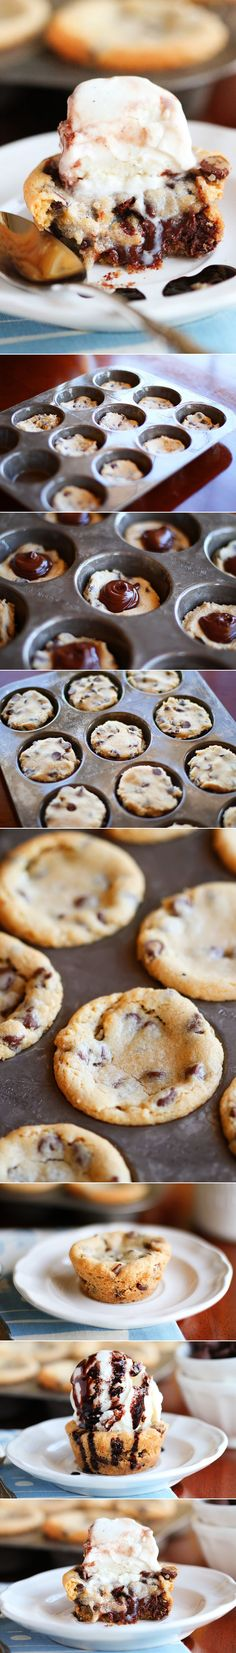 Deep Dish Chocolate Chip Molten Lava Cookies (made in a muffin tin)